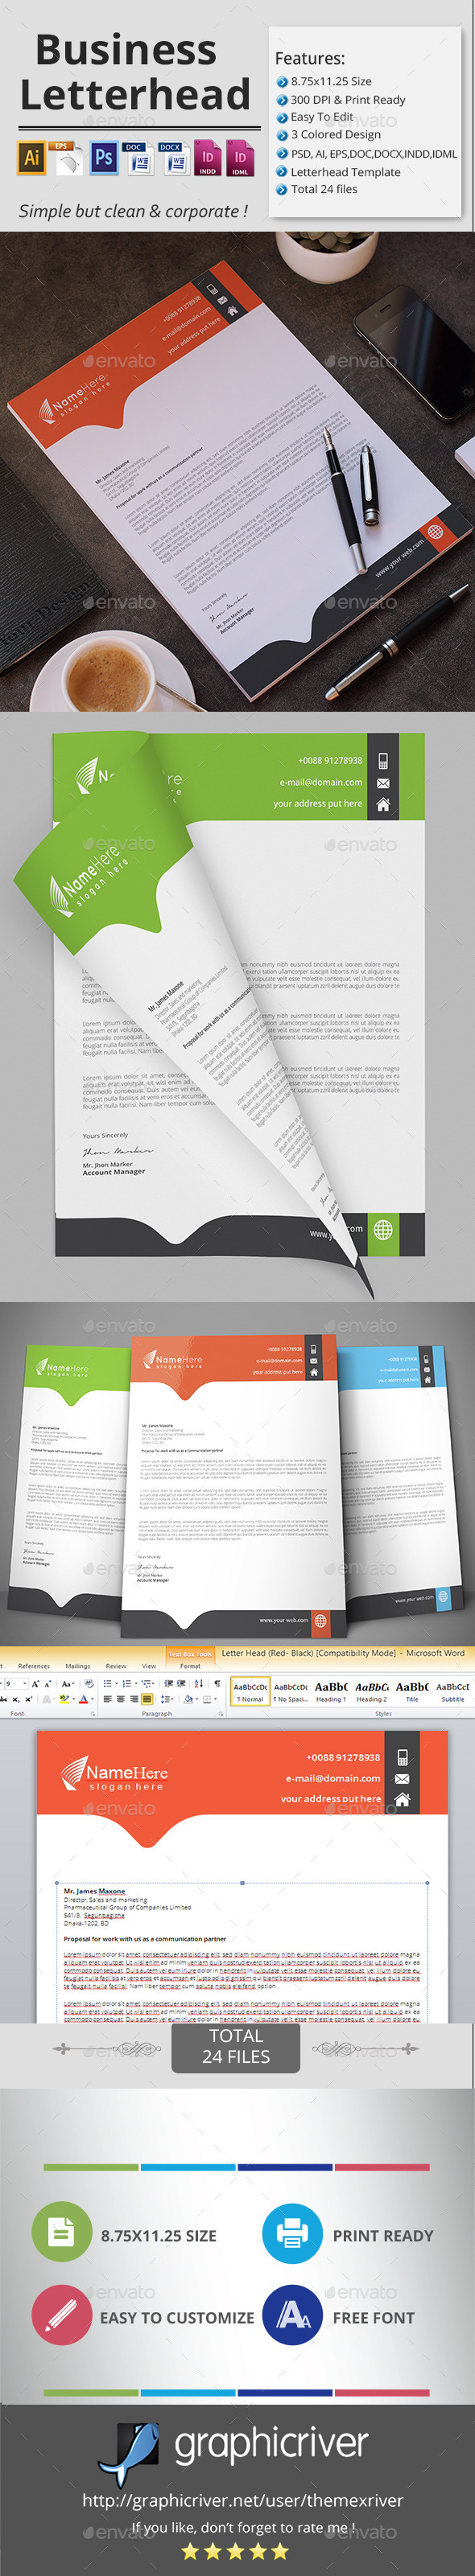 GraphicRiver Business Letterhead 11908507